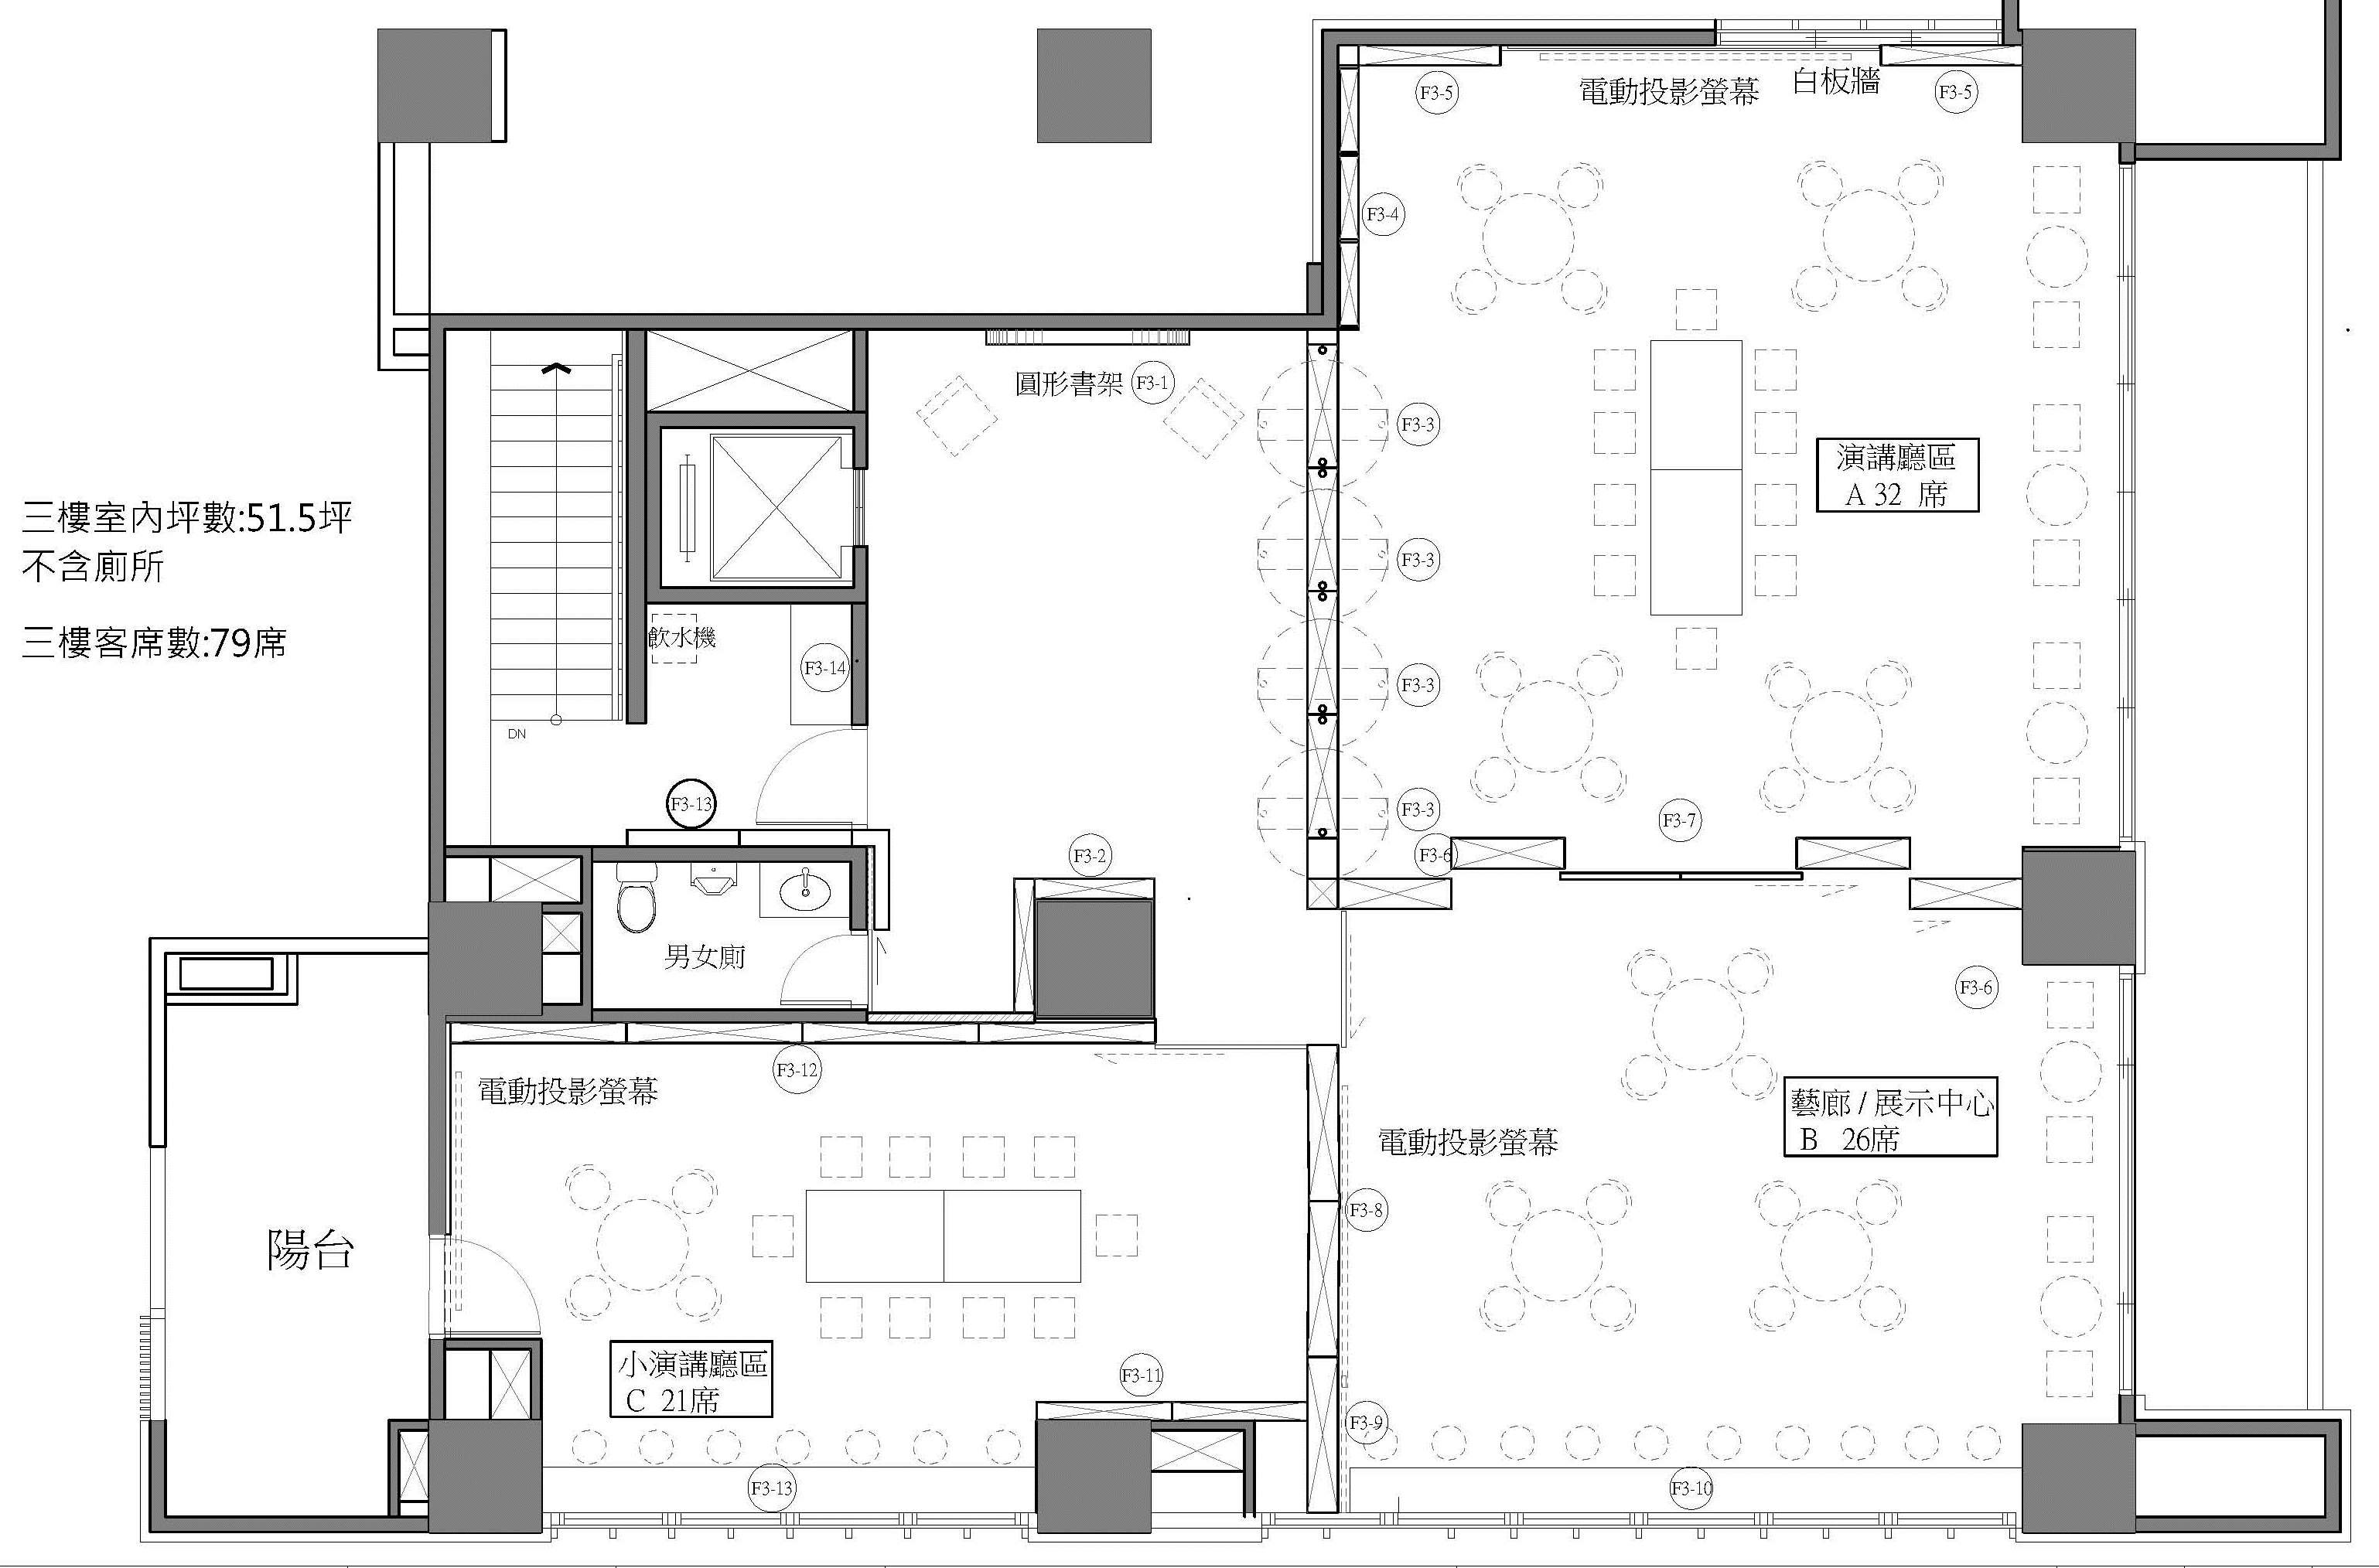 3F plan Homeyoung interior decorating and design Ltd.}